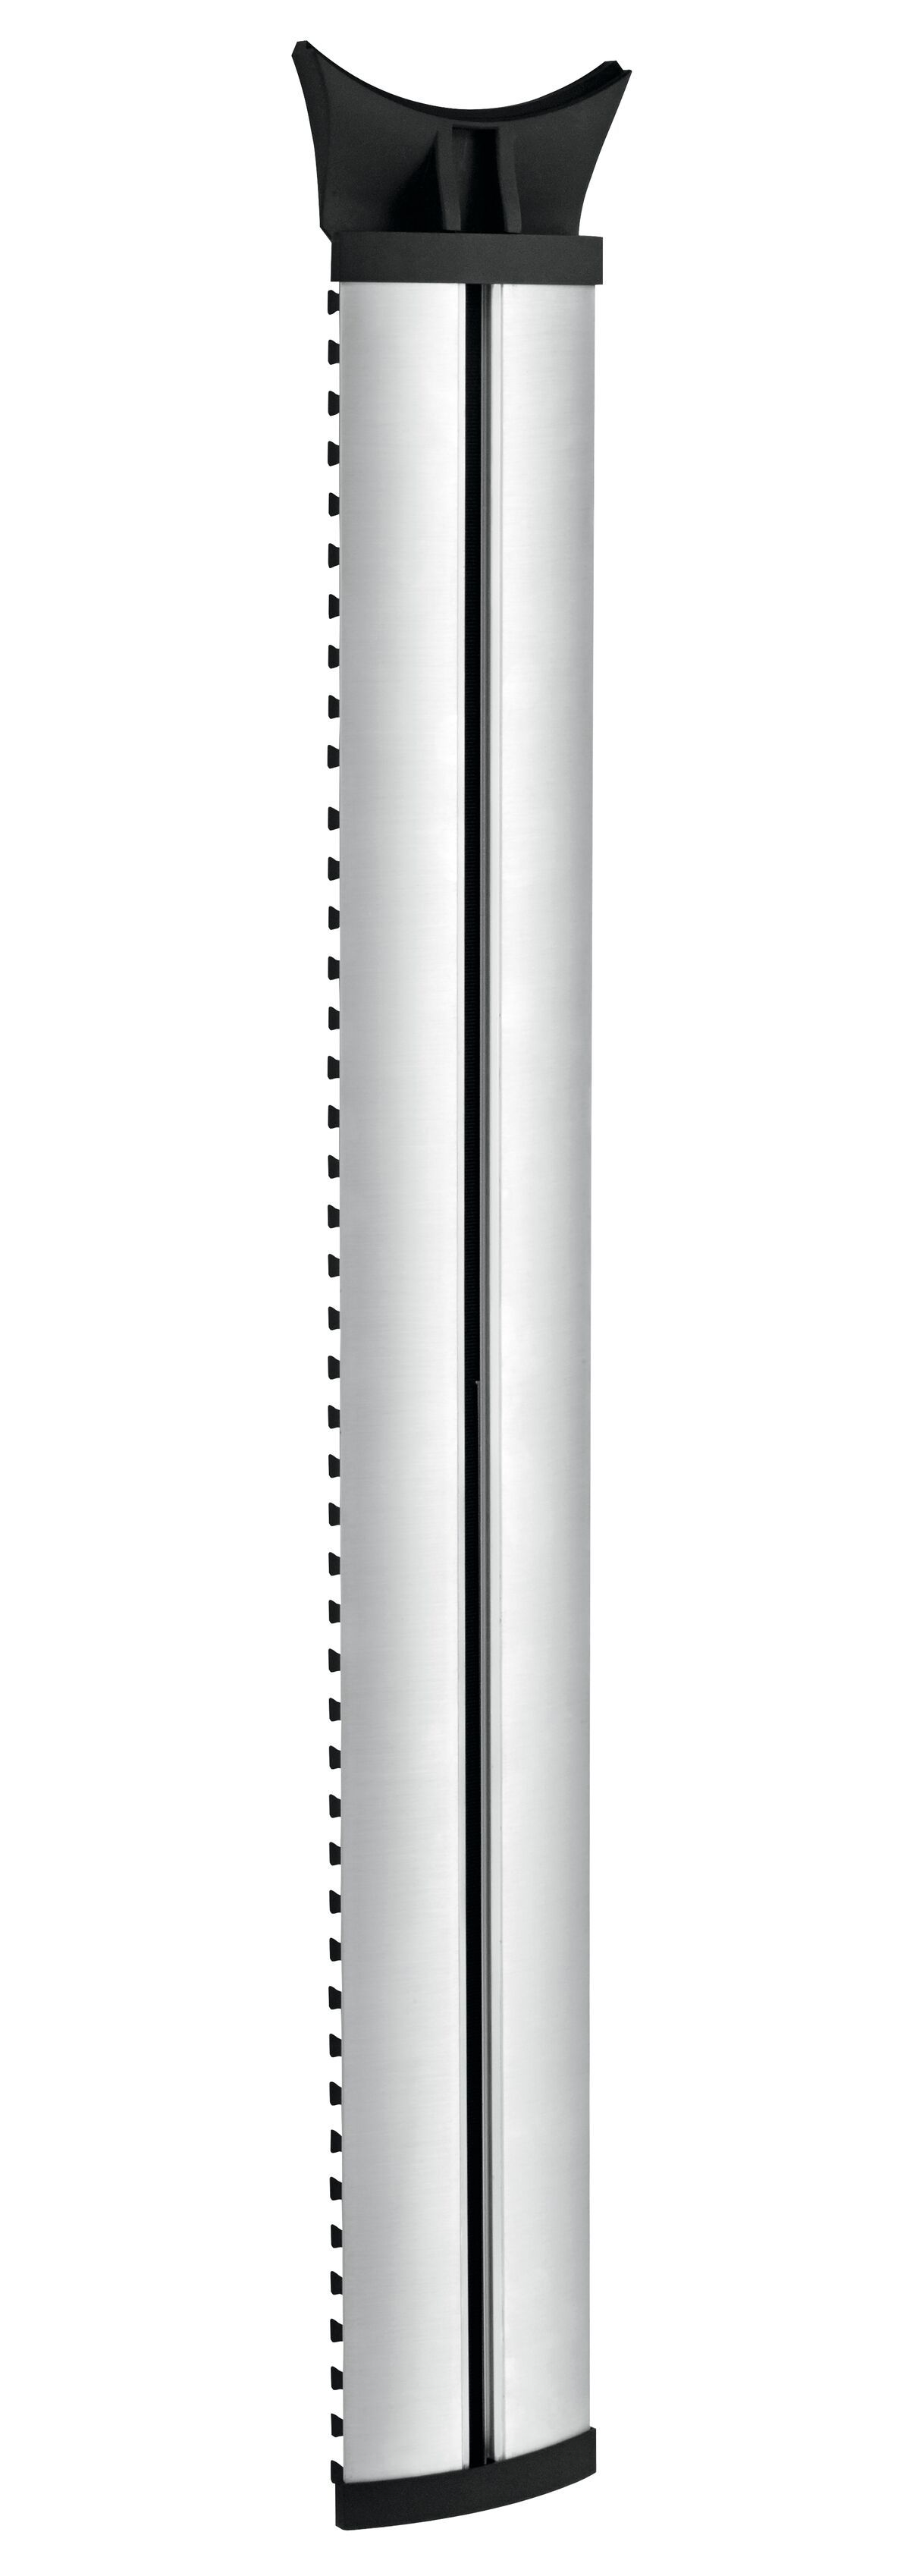 Vogel's NEXT 7840 Cable Column - Max. number of cables to hold: Up to 10 cables - Length: 100 cm - Product